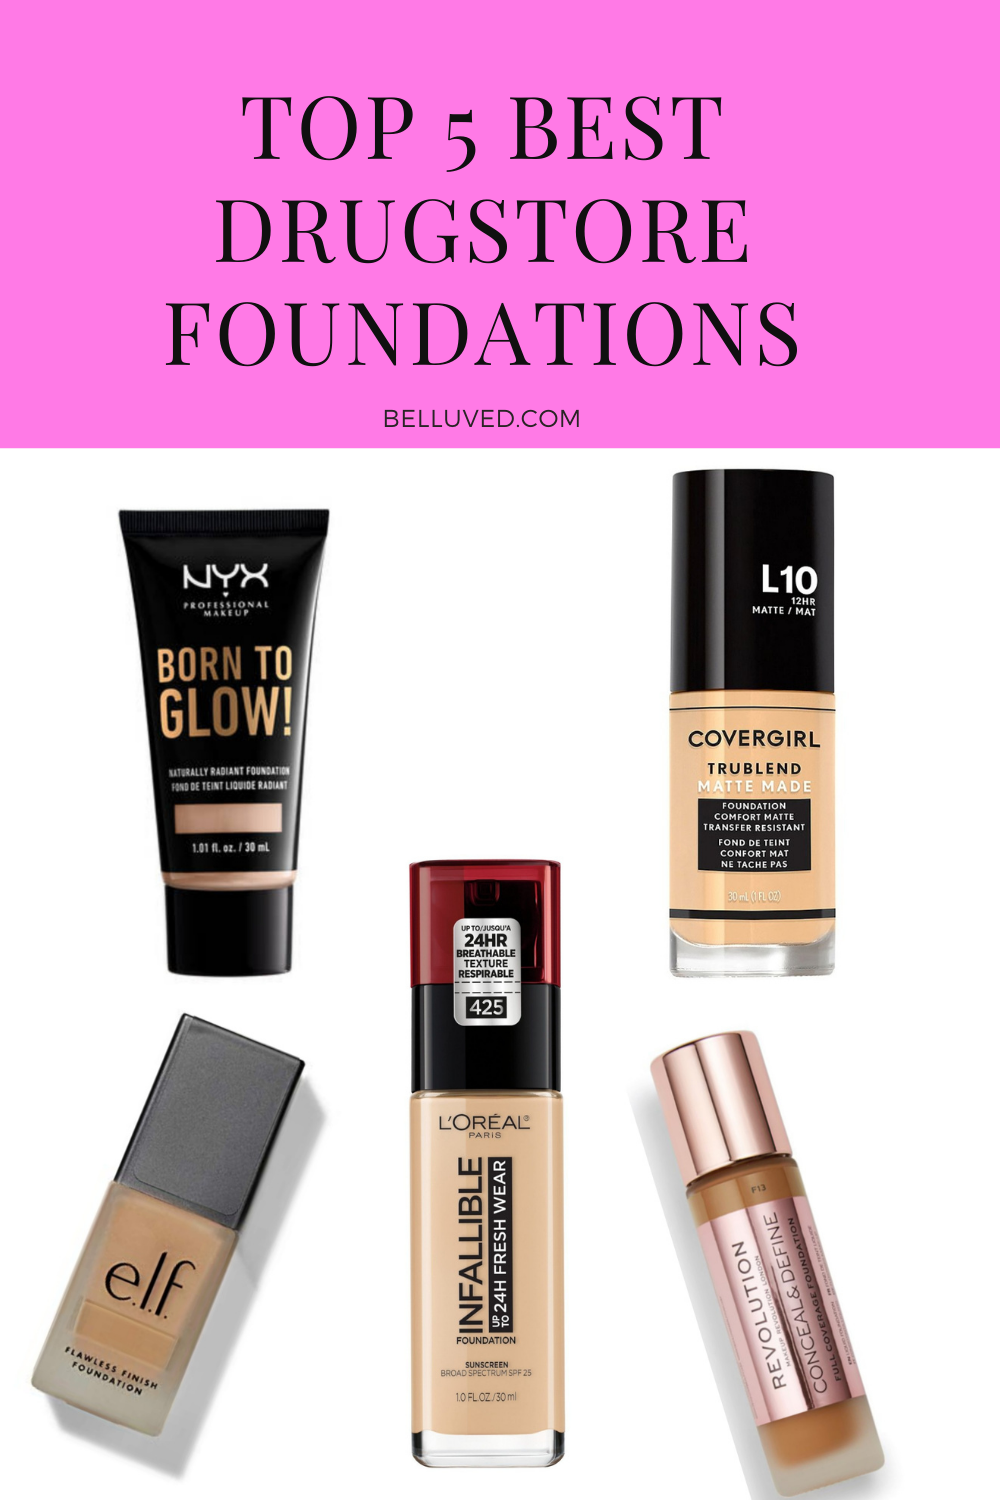 Top 5 Best Drugstore Foundations